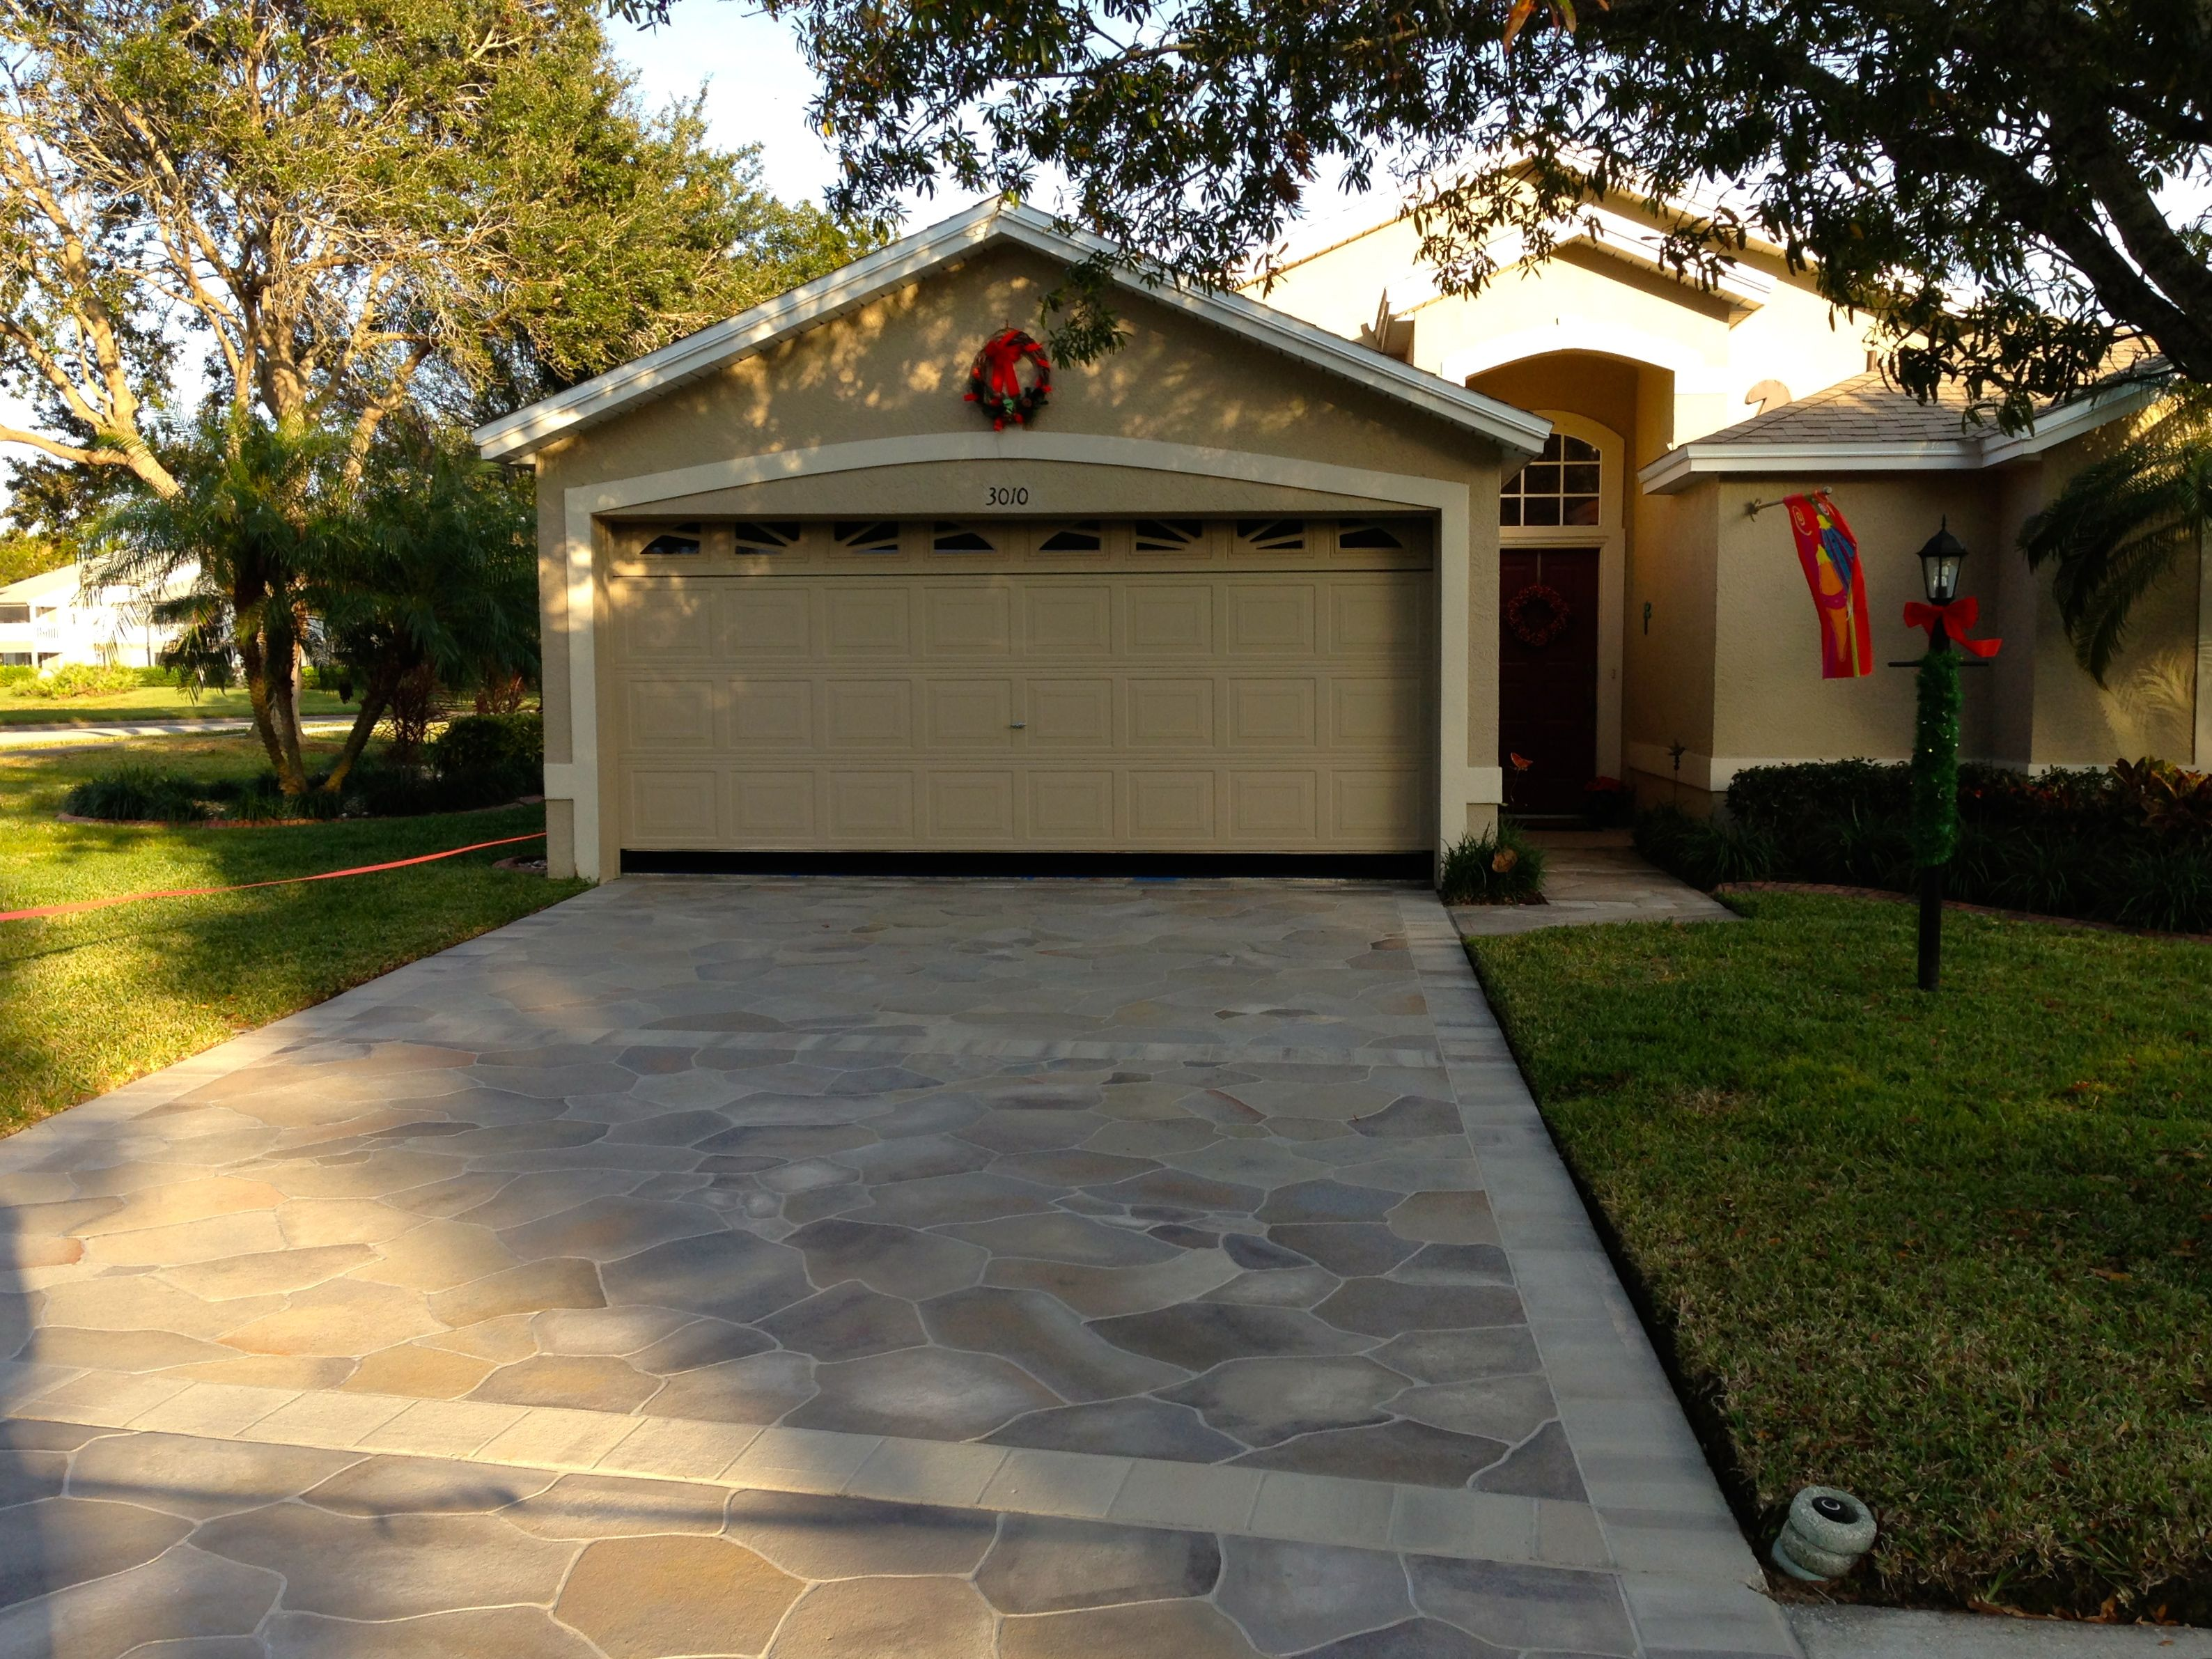 painted driveways the villages florida concrete designs florida driveway decorating ideas - Driveway Design Ideas